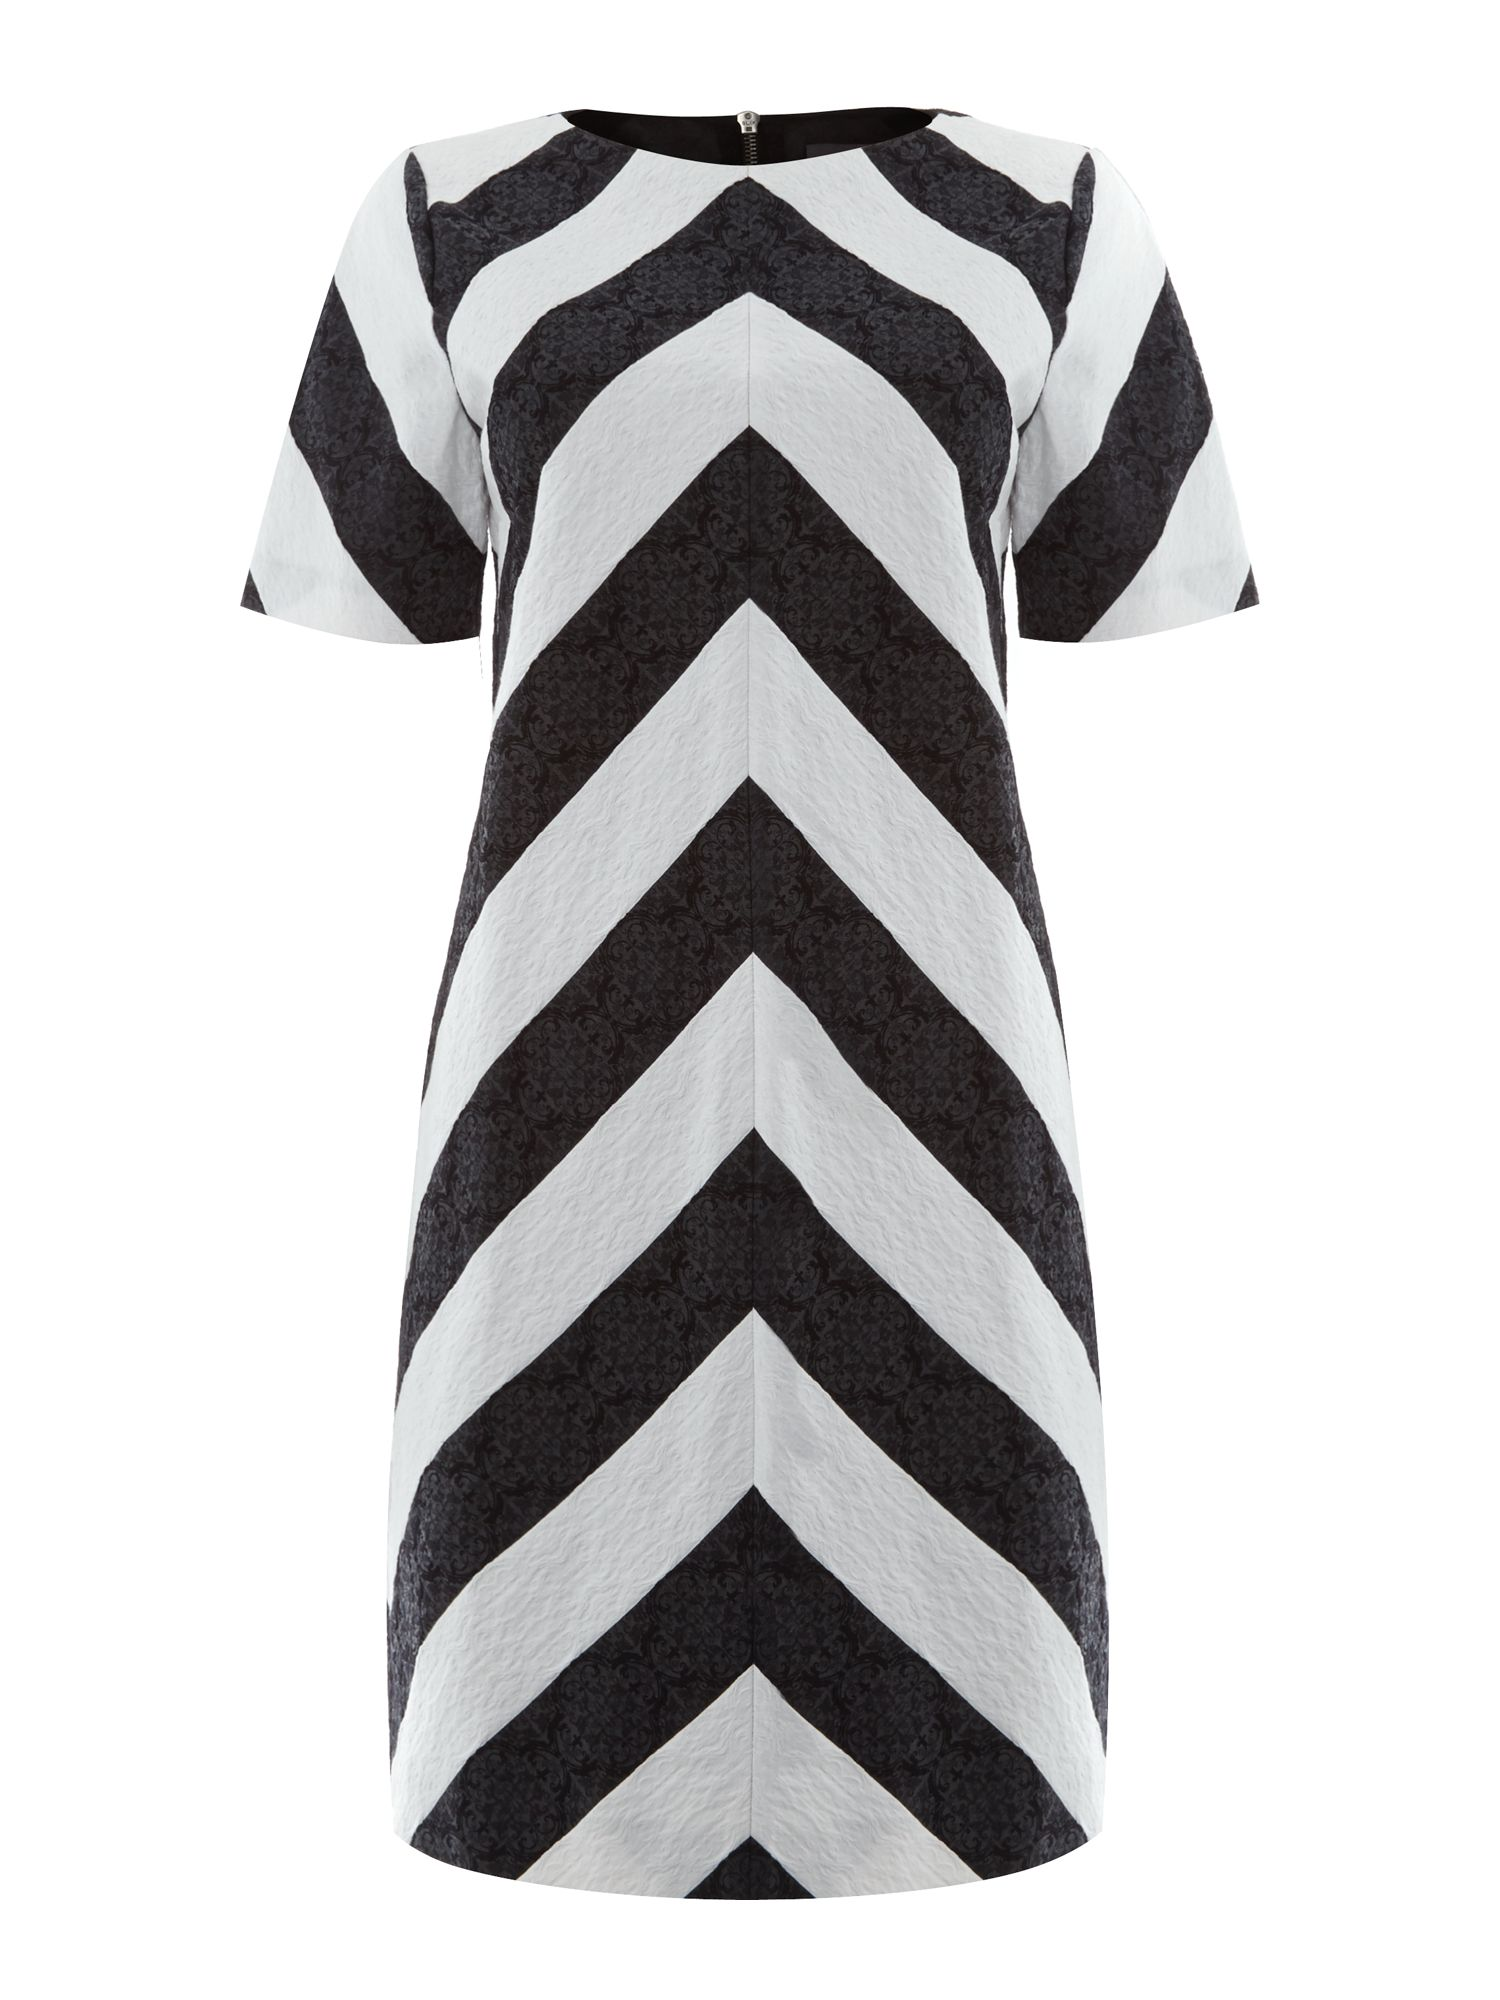 Chevron shift dress